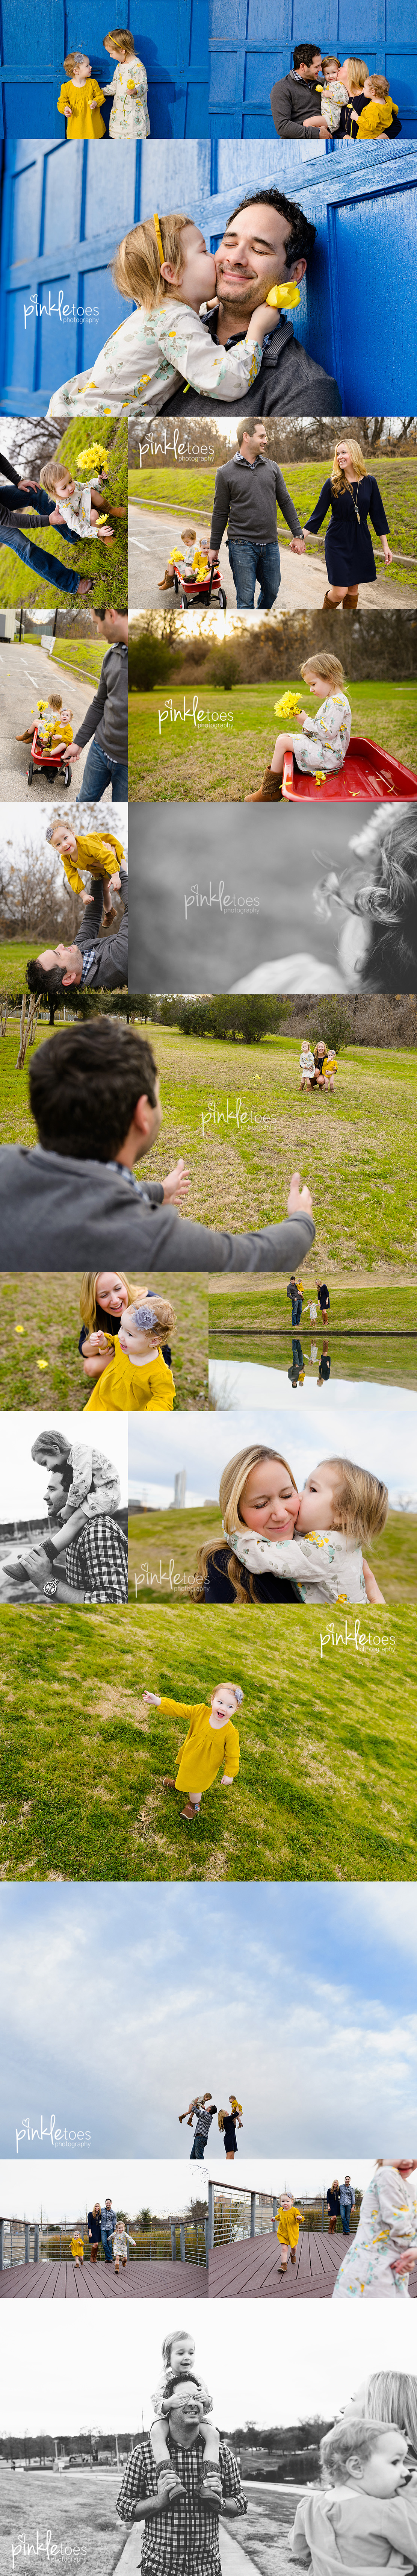 p-austin-family-kids-photography-downtown-butler-park-lifestyle-photographer-texas